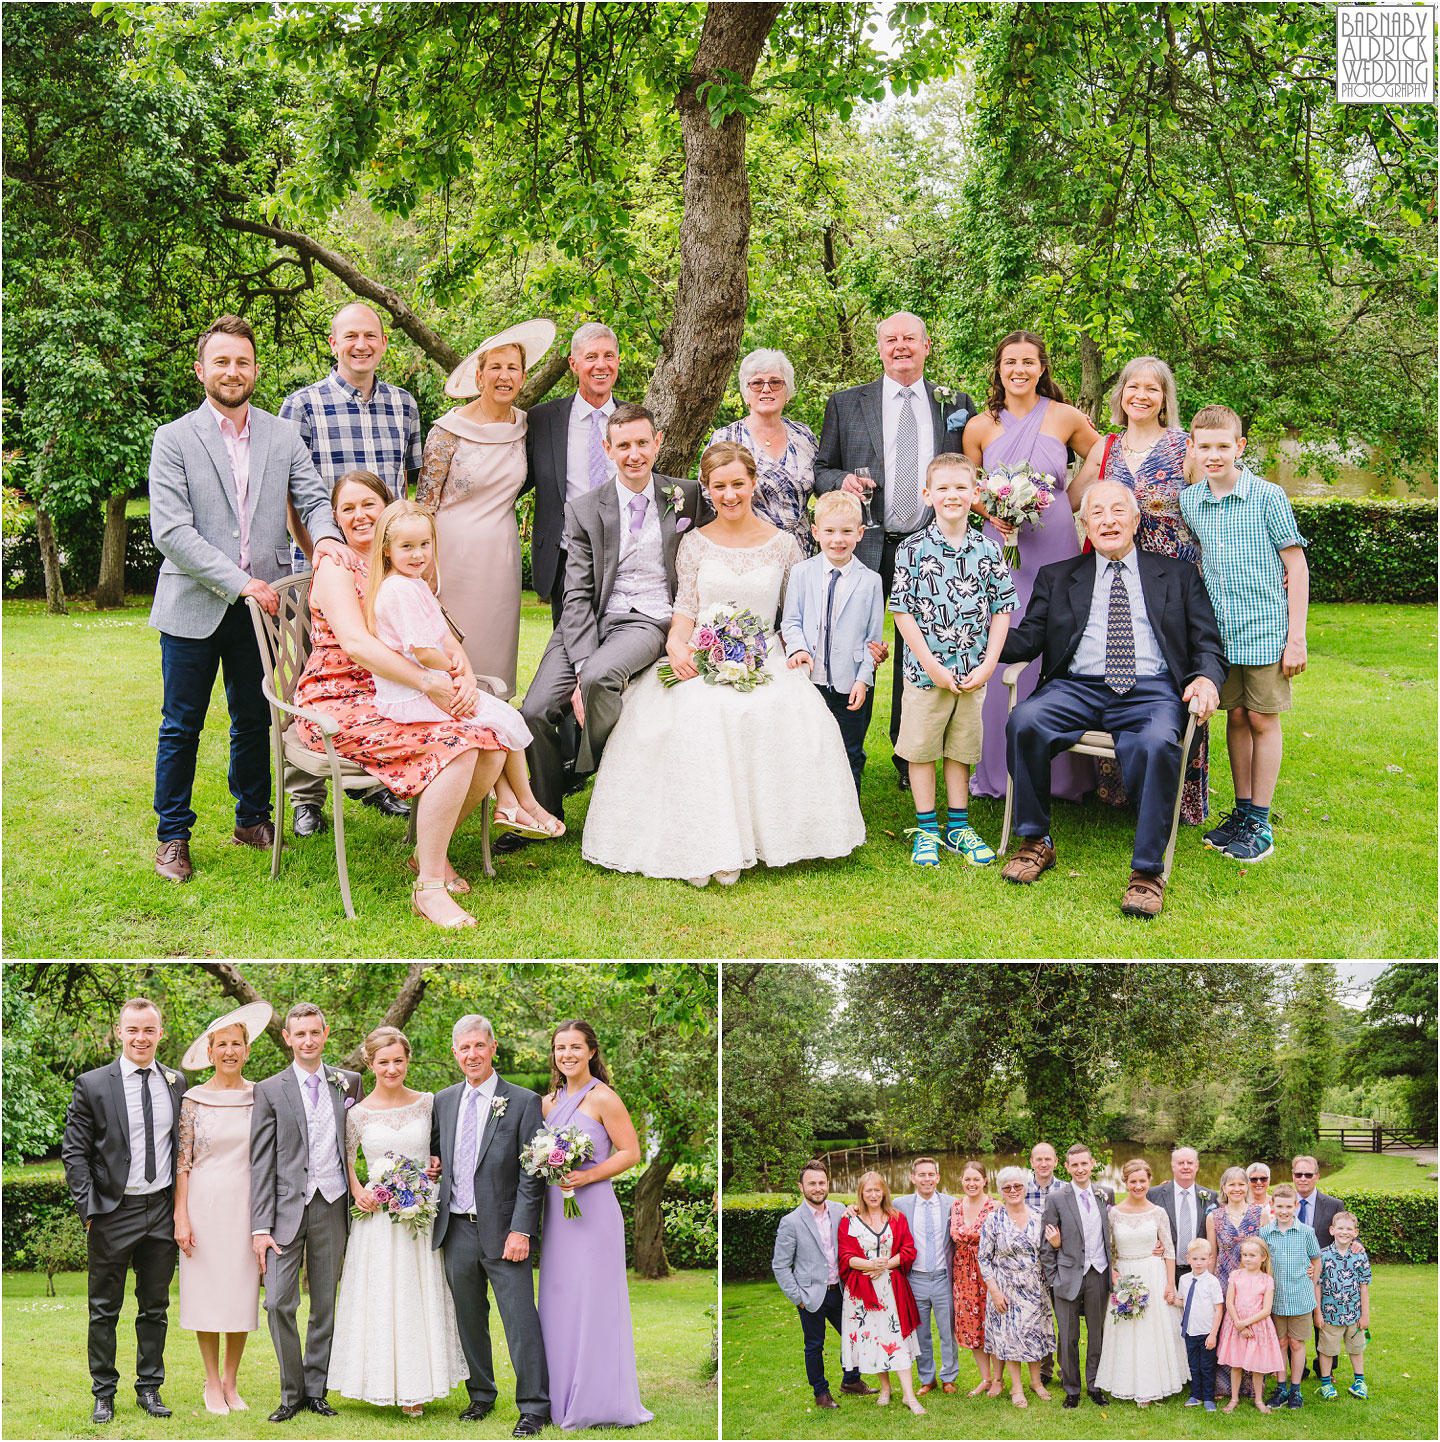 Wedding Group photos at The Pheasant Hotel Harome, The Pheasant Hotel Wedding Helmsley, Wedding Photography at The Pheasant Hotel North Yorkshire, North Yorkshire Wedding Photographer